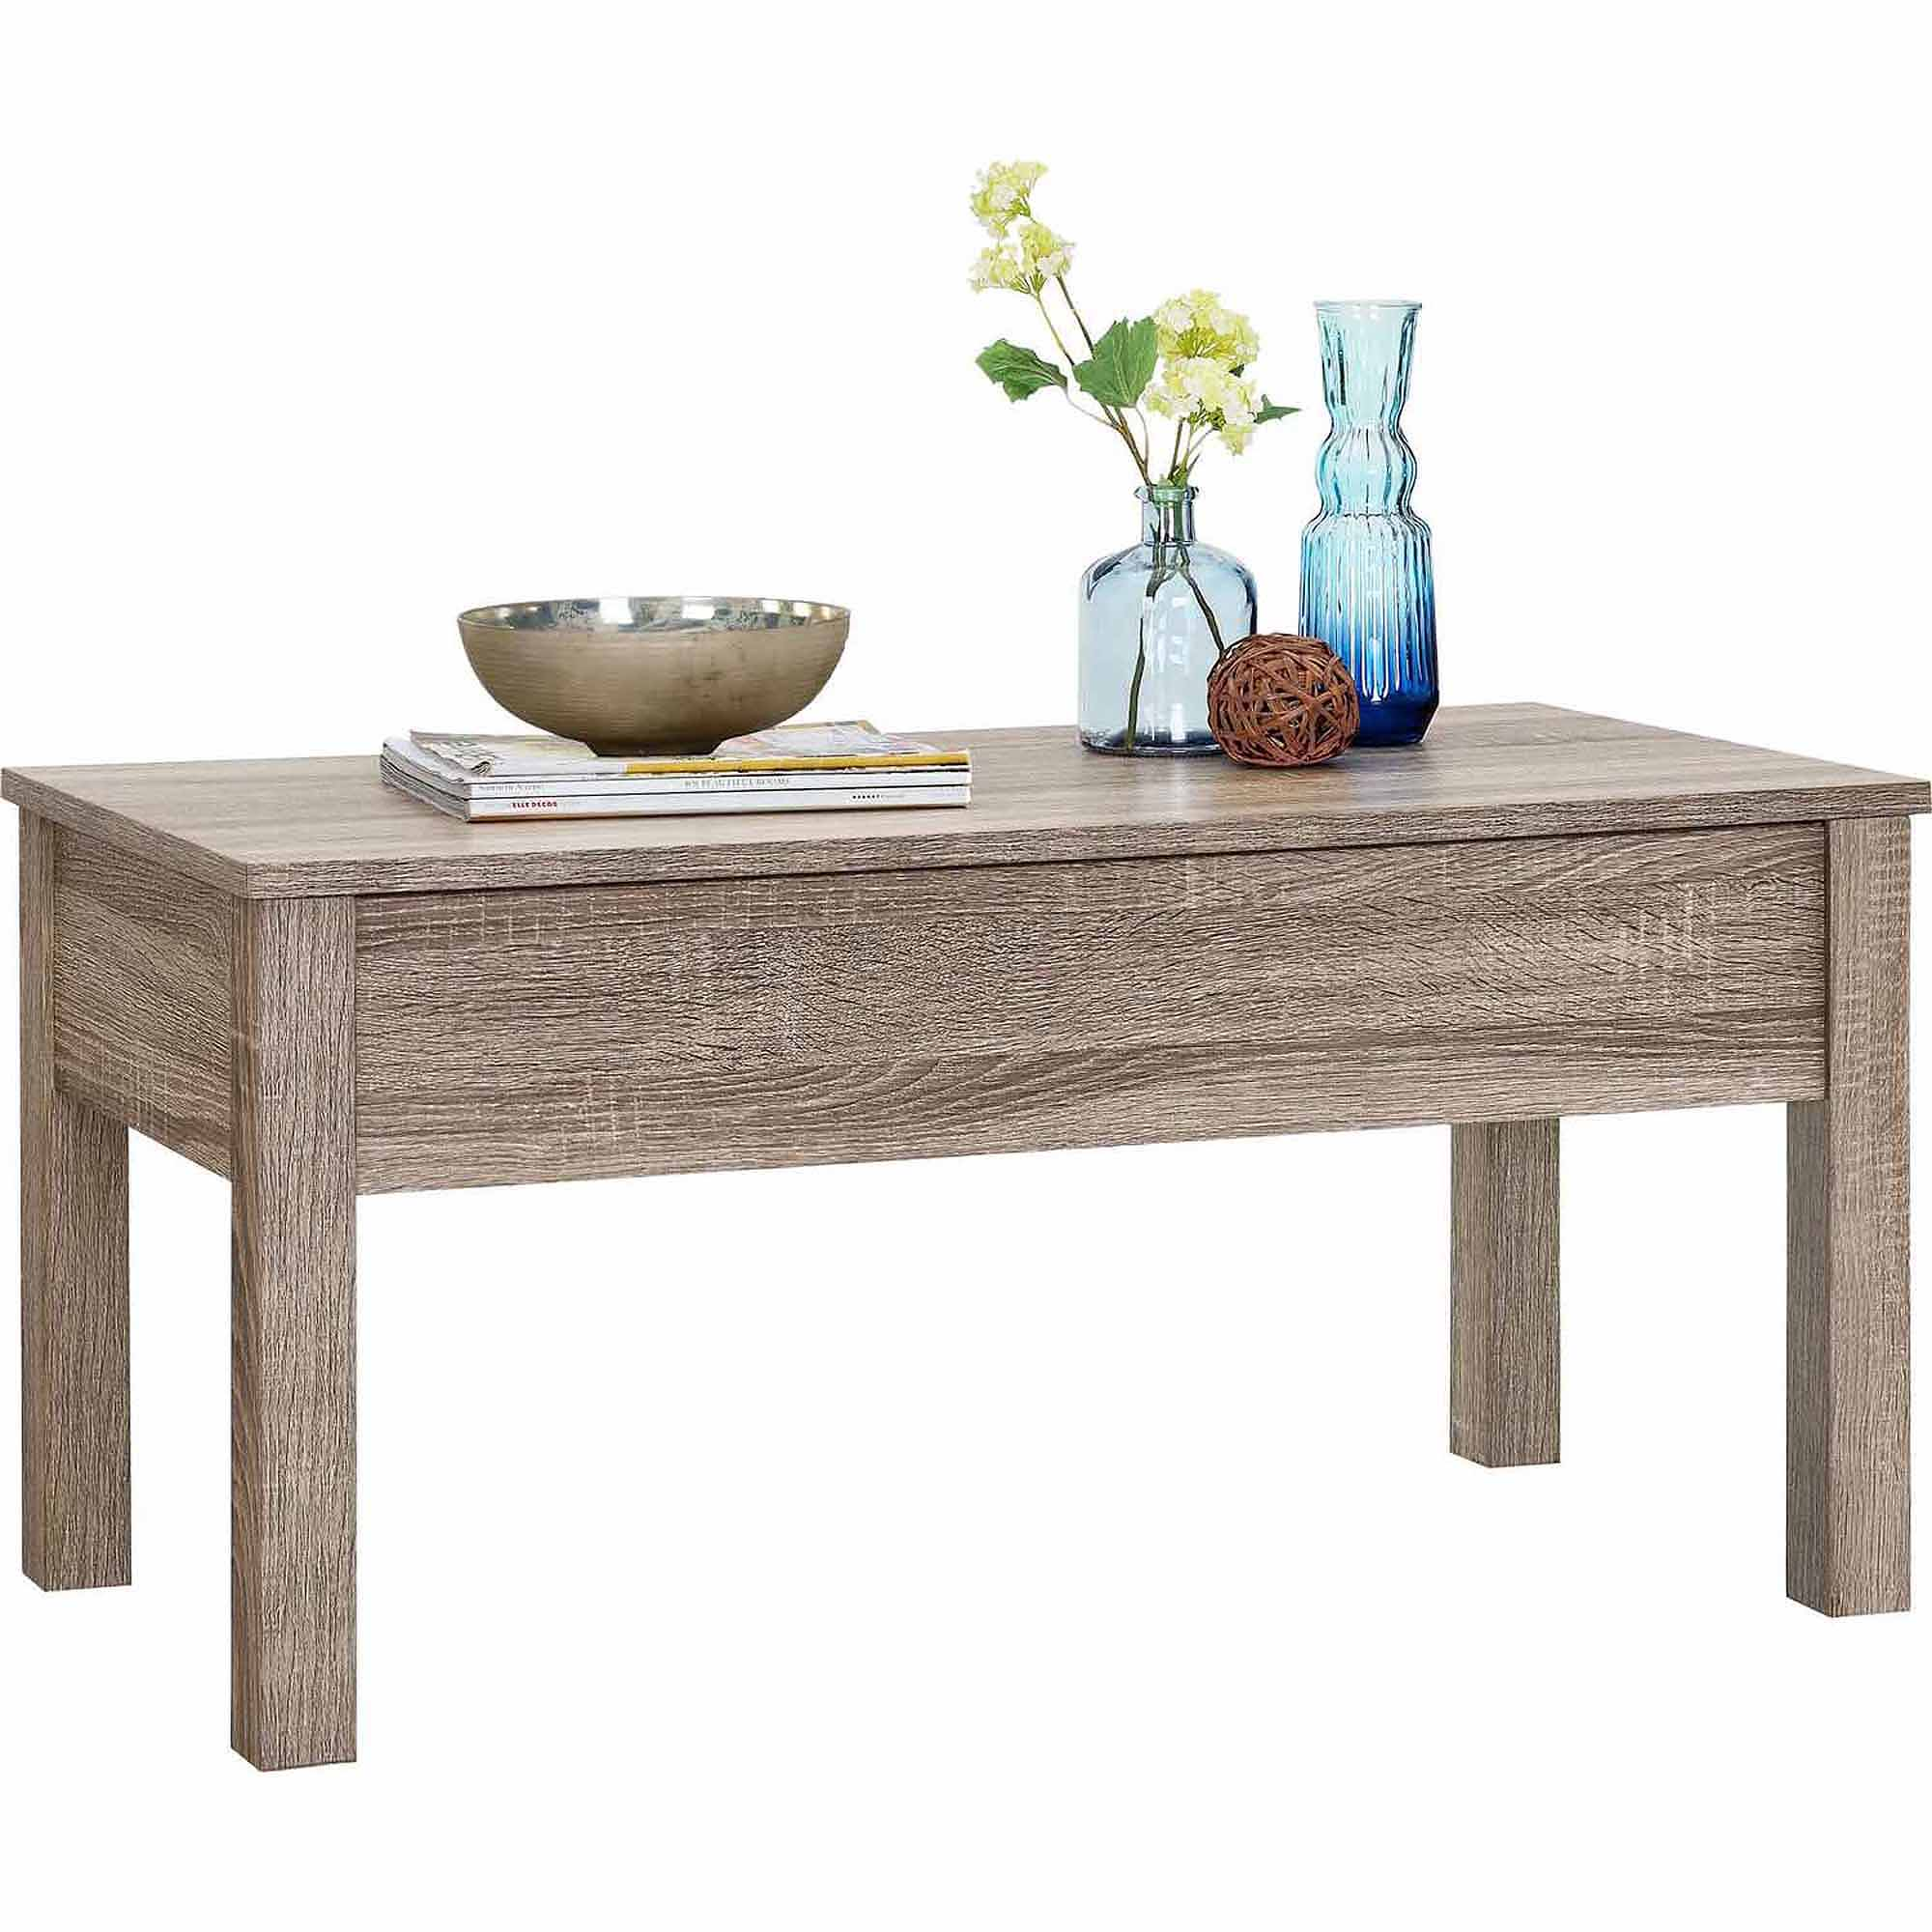 furniture beautiful collection coffee table better homes and gardens target mirrored accent white end tables lift top with storage threshold wood block small side glass